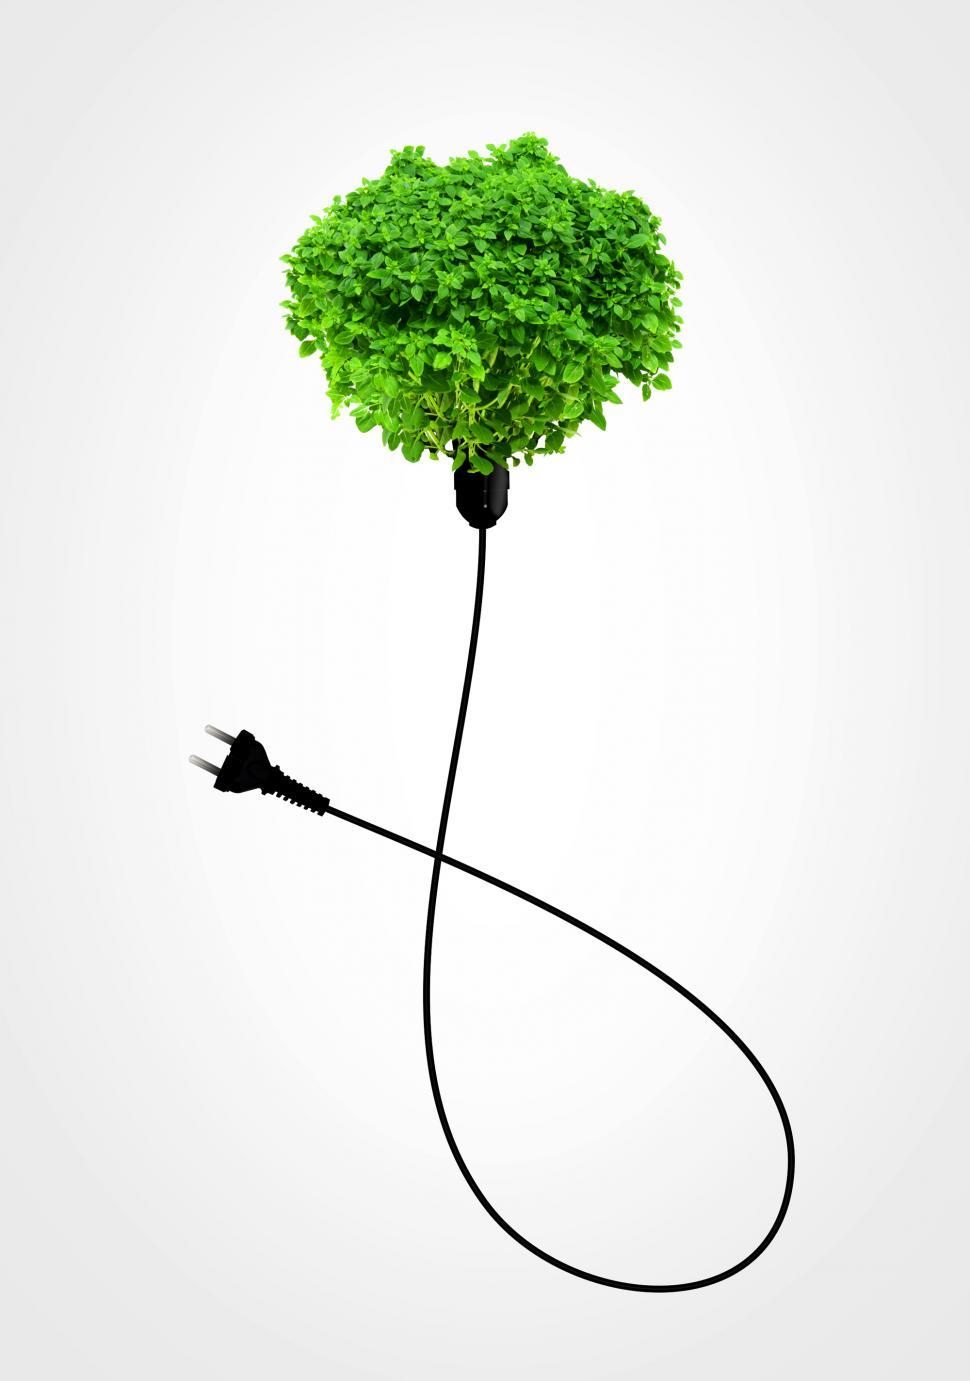 Download Free Stock HD Photo of Clean Energy Concept - A Green Power Plug on White Online